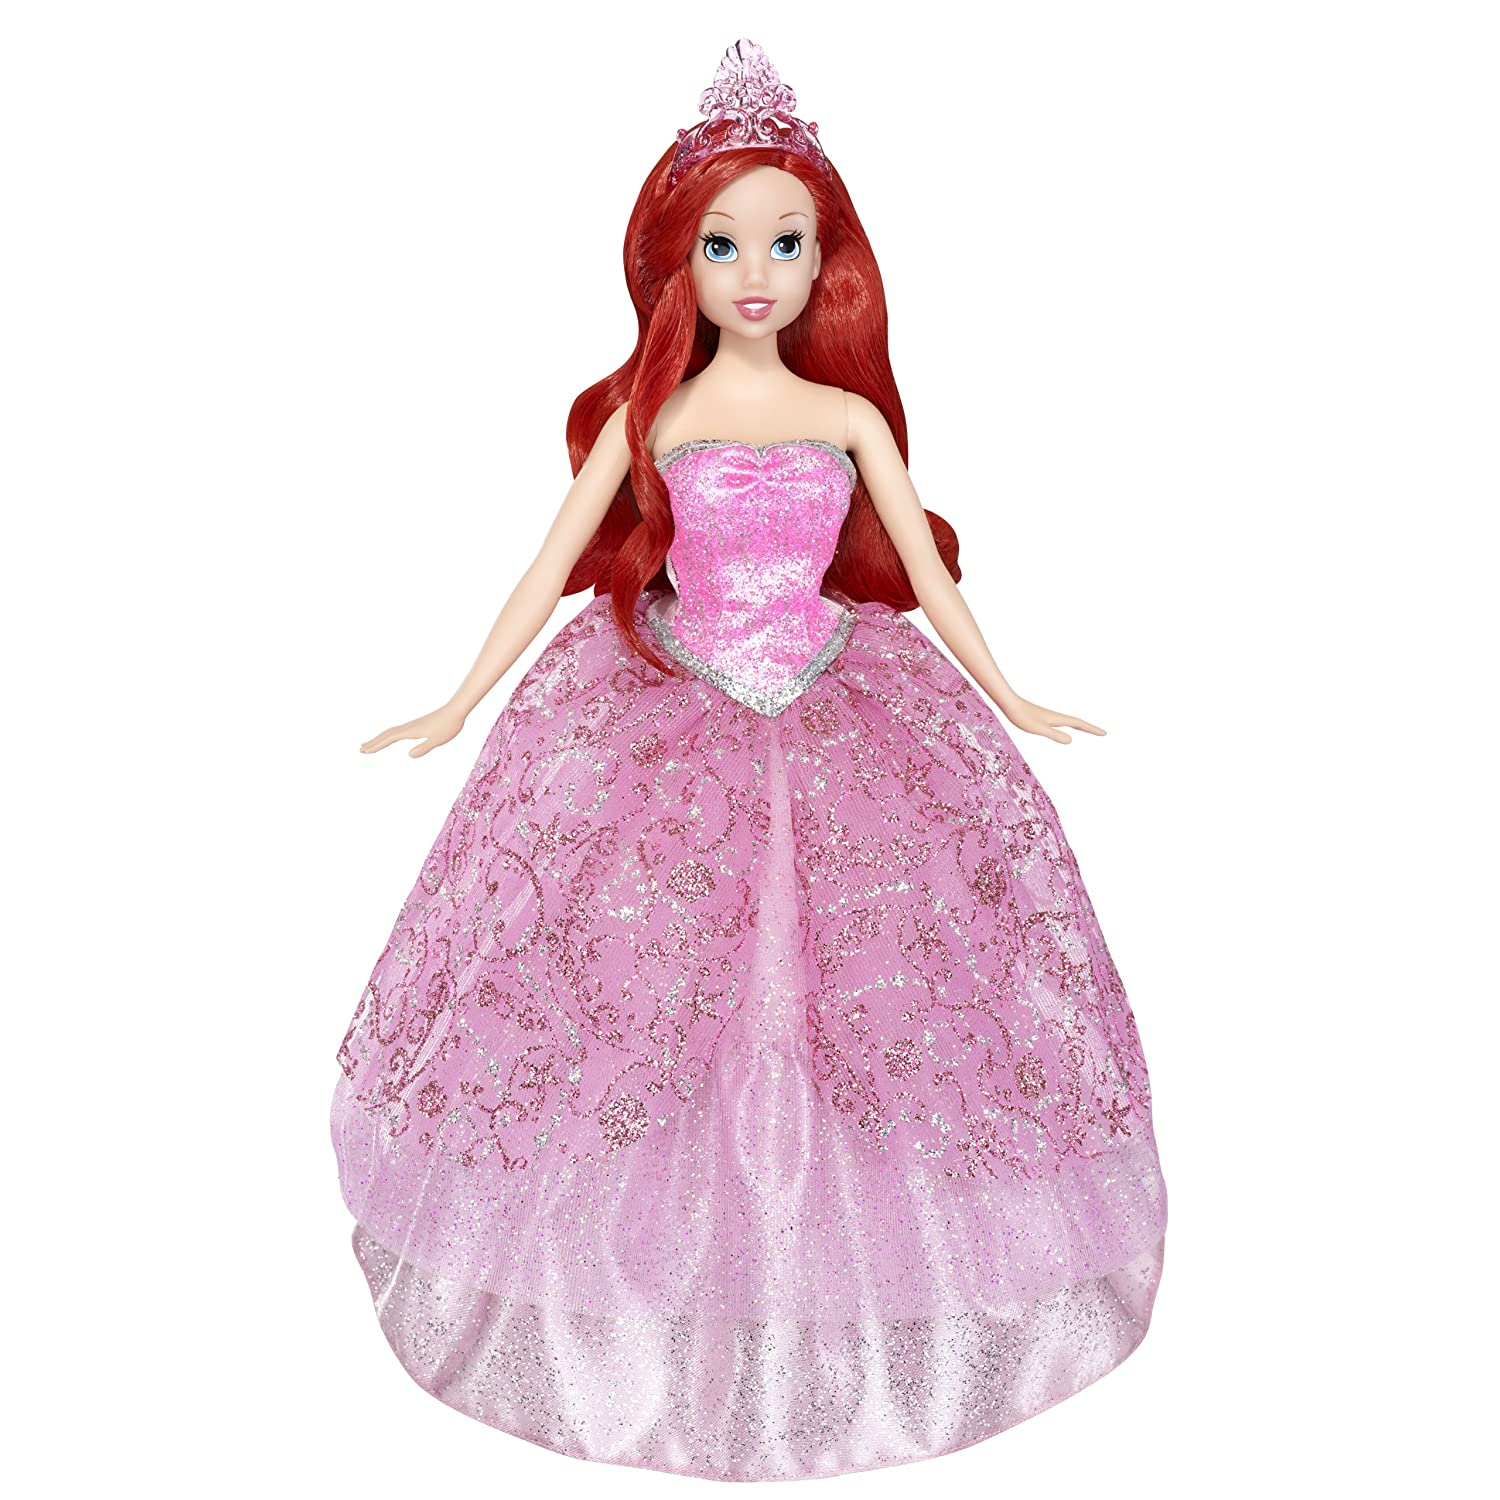 New Disney Princess Ball Gown Surprise 2 In 1 Little